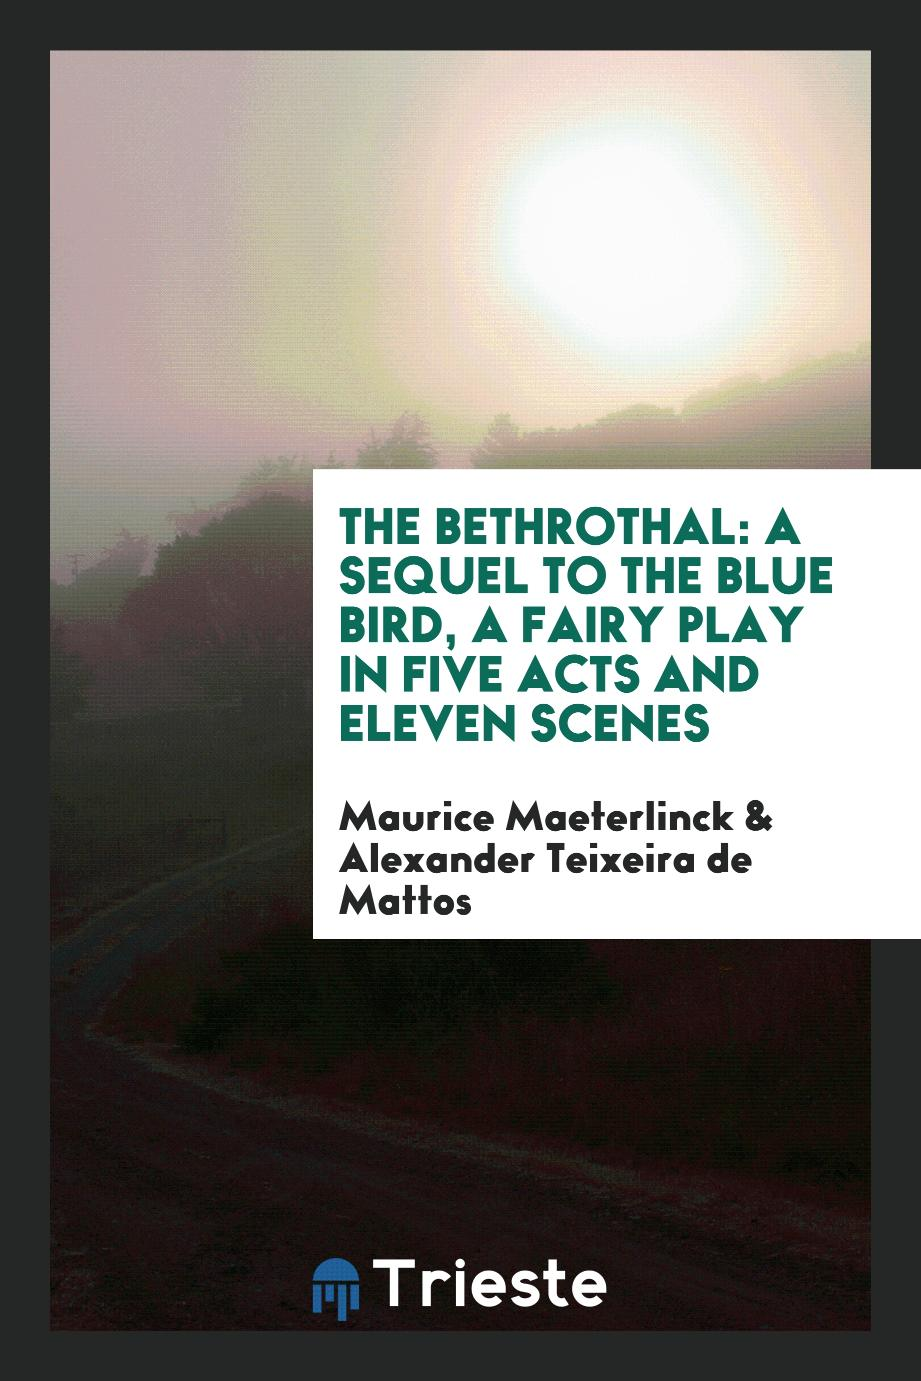 The Bethrothal: A Sequel to the Blue Bird, a Fairy Play in Five Acts and Eleven Scenes